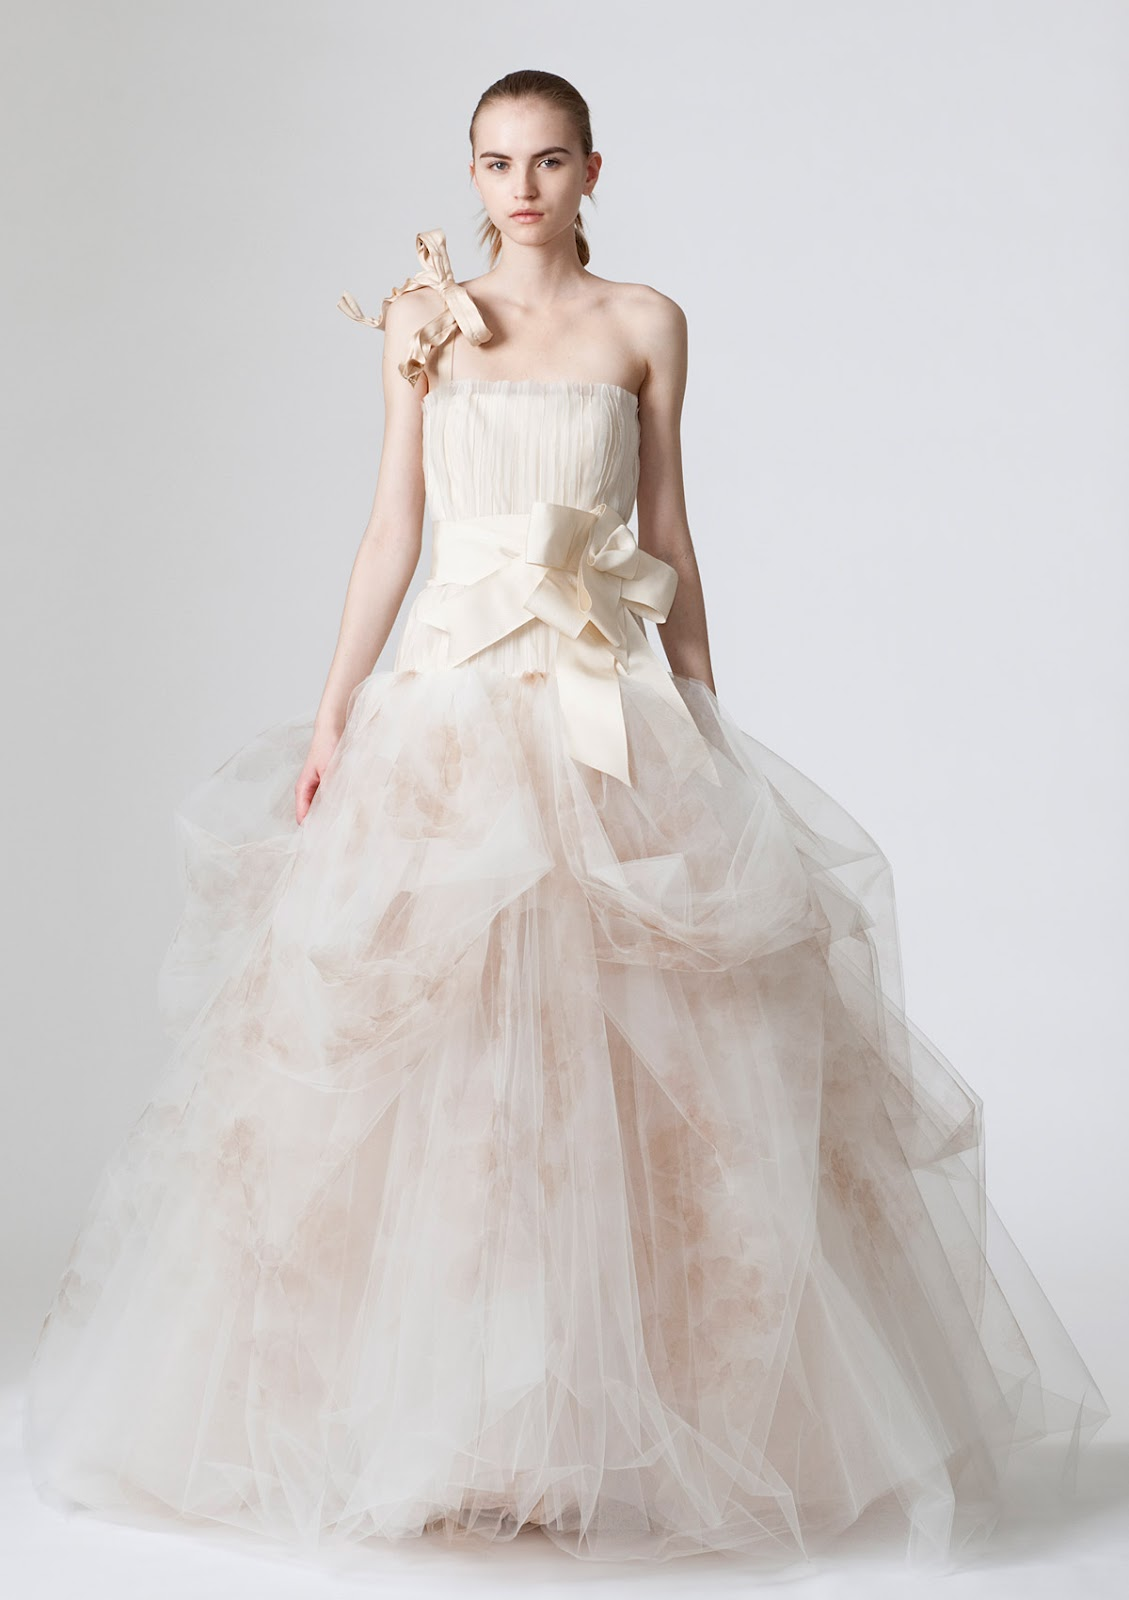 Luxurious Wedding Gown By World Famous Designer Vera